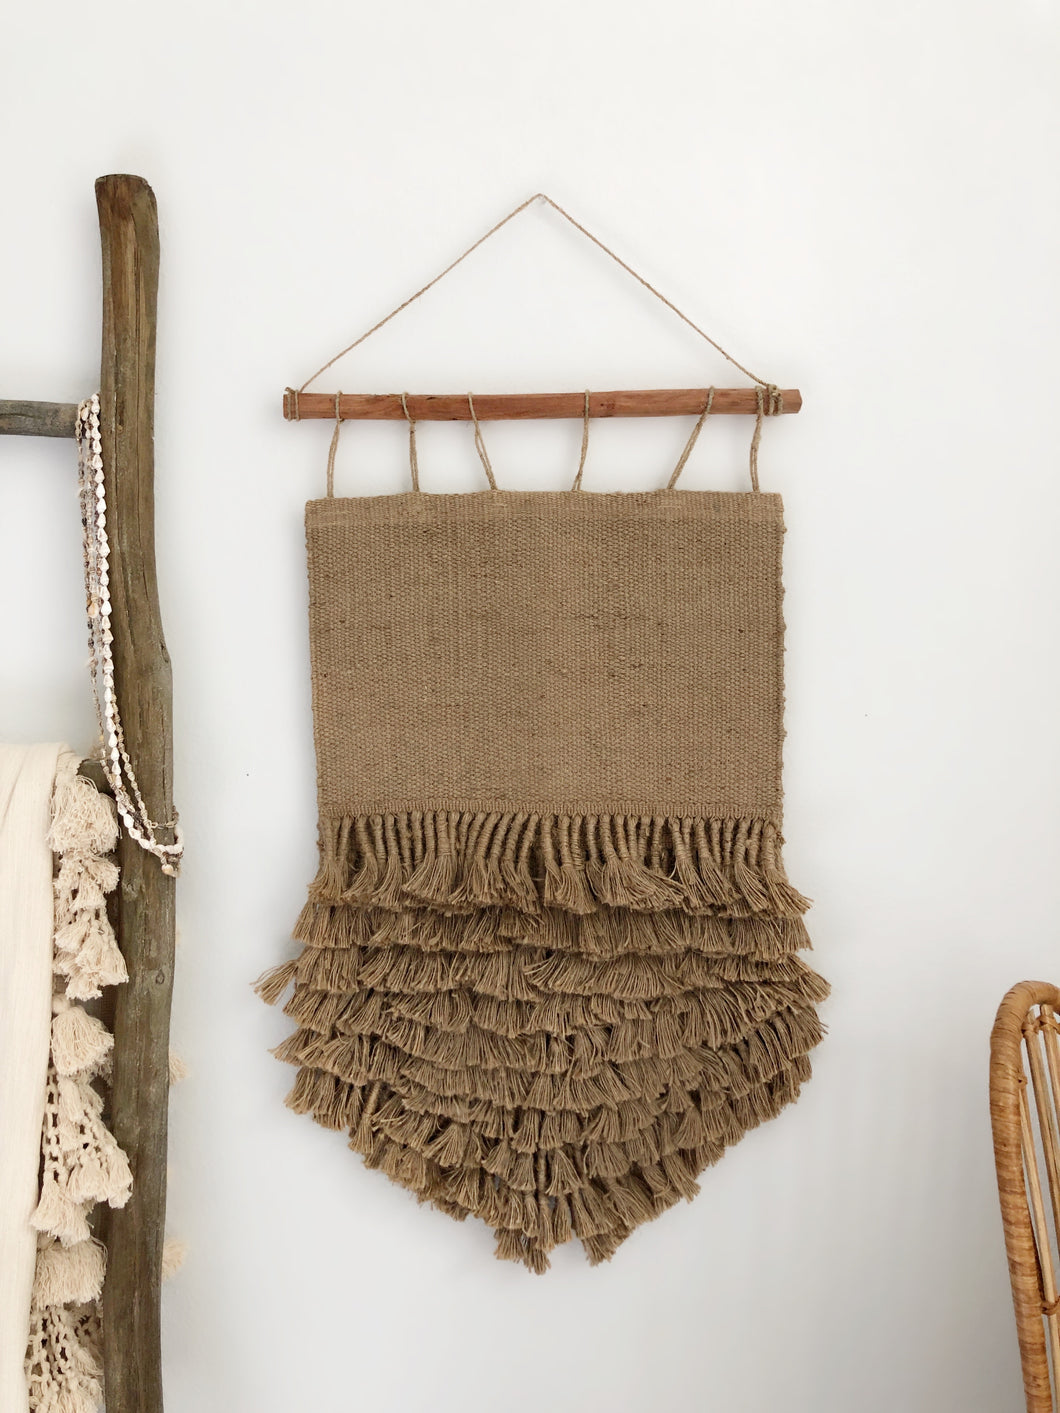 Galia Handwoven Wall Hanging